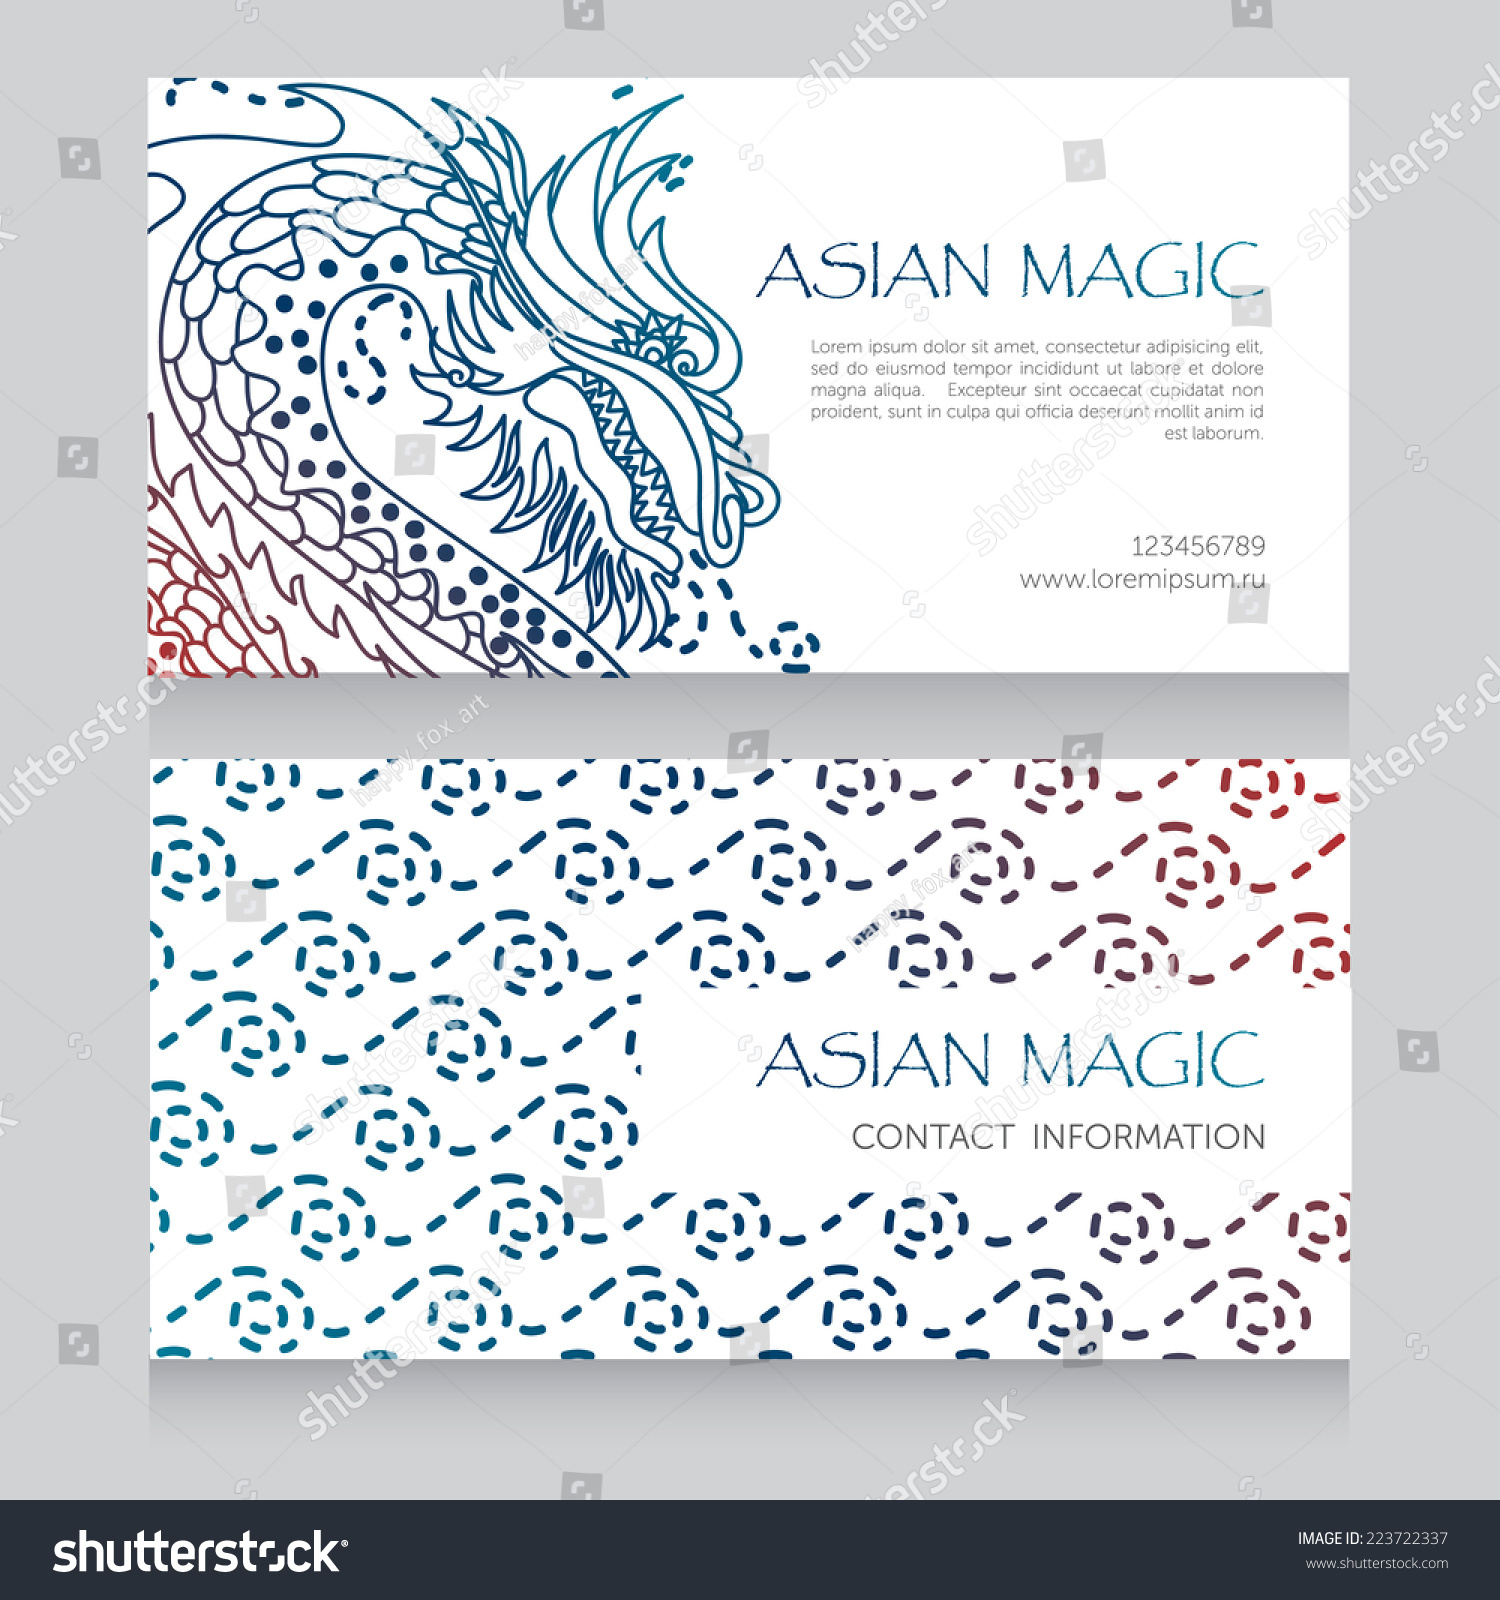 Unusual Asian Business Cards Pictures Inspiration - Business Card ...